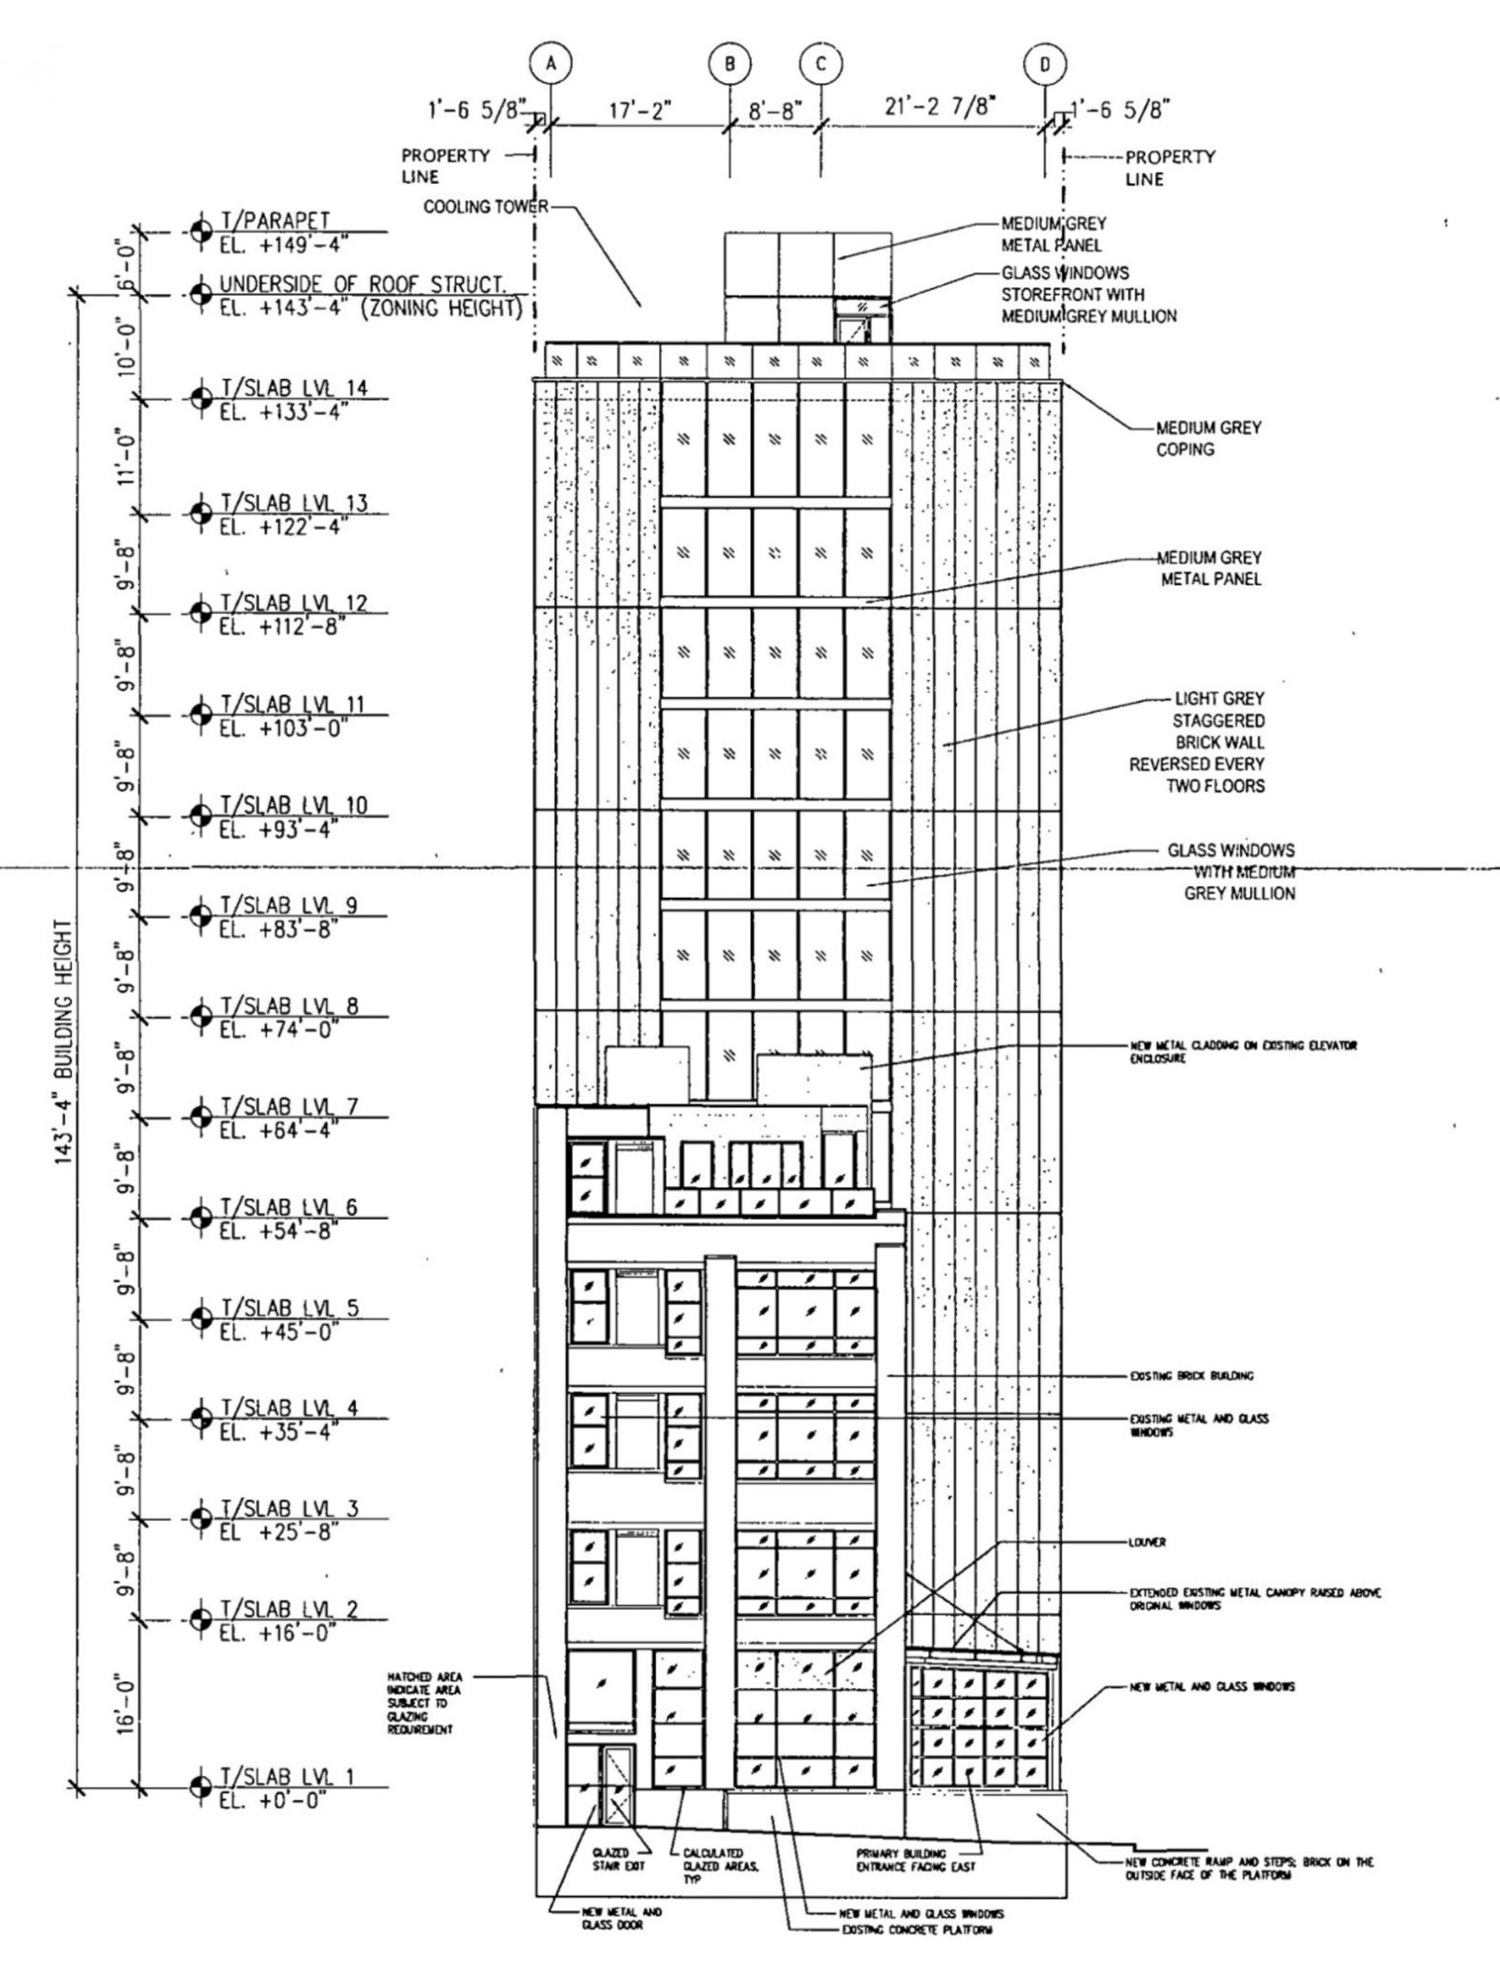 East Elevation for 311 N Sangamon Street and 310 N Peoria Street. Drawing by Hirsch MPG